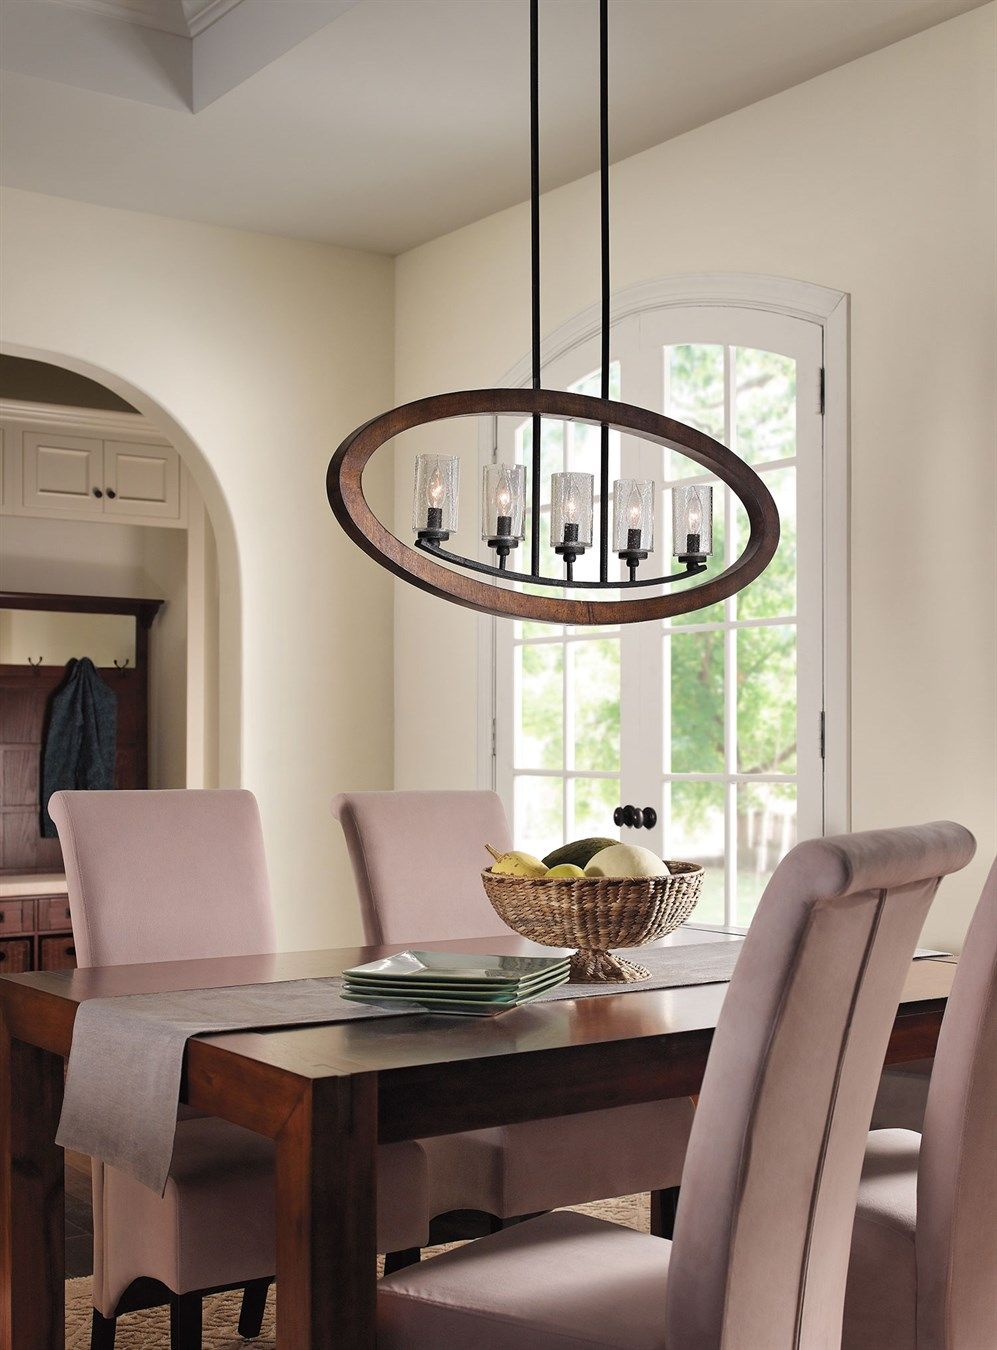 Dining room lighting. Grand Bank 5 Light Linear Chandelier ...